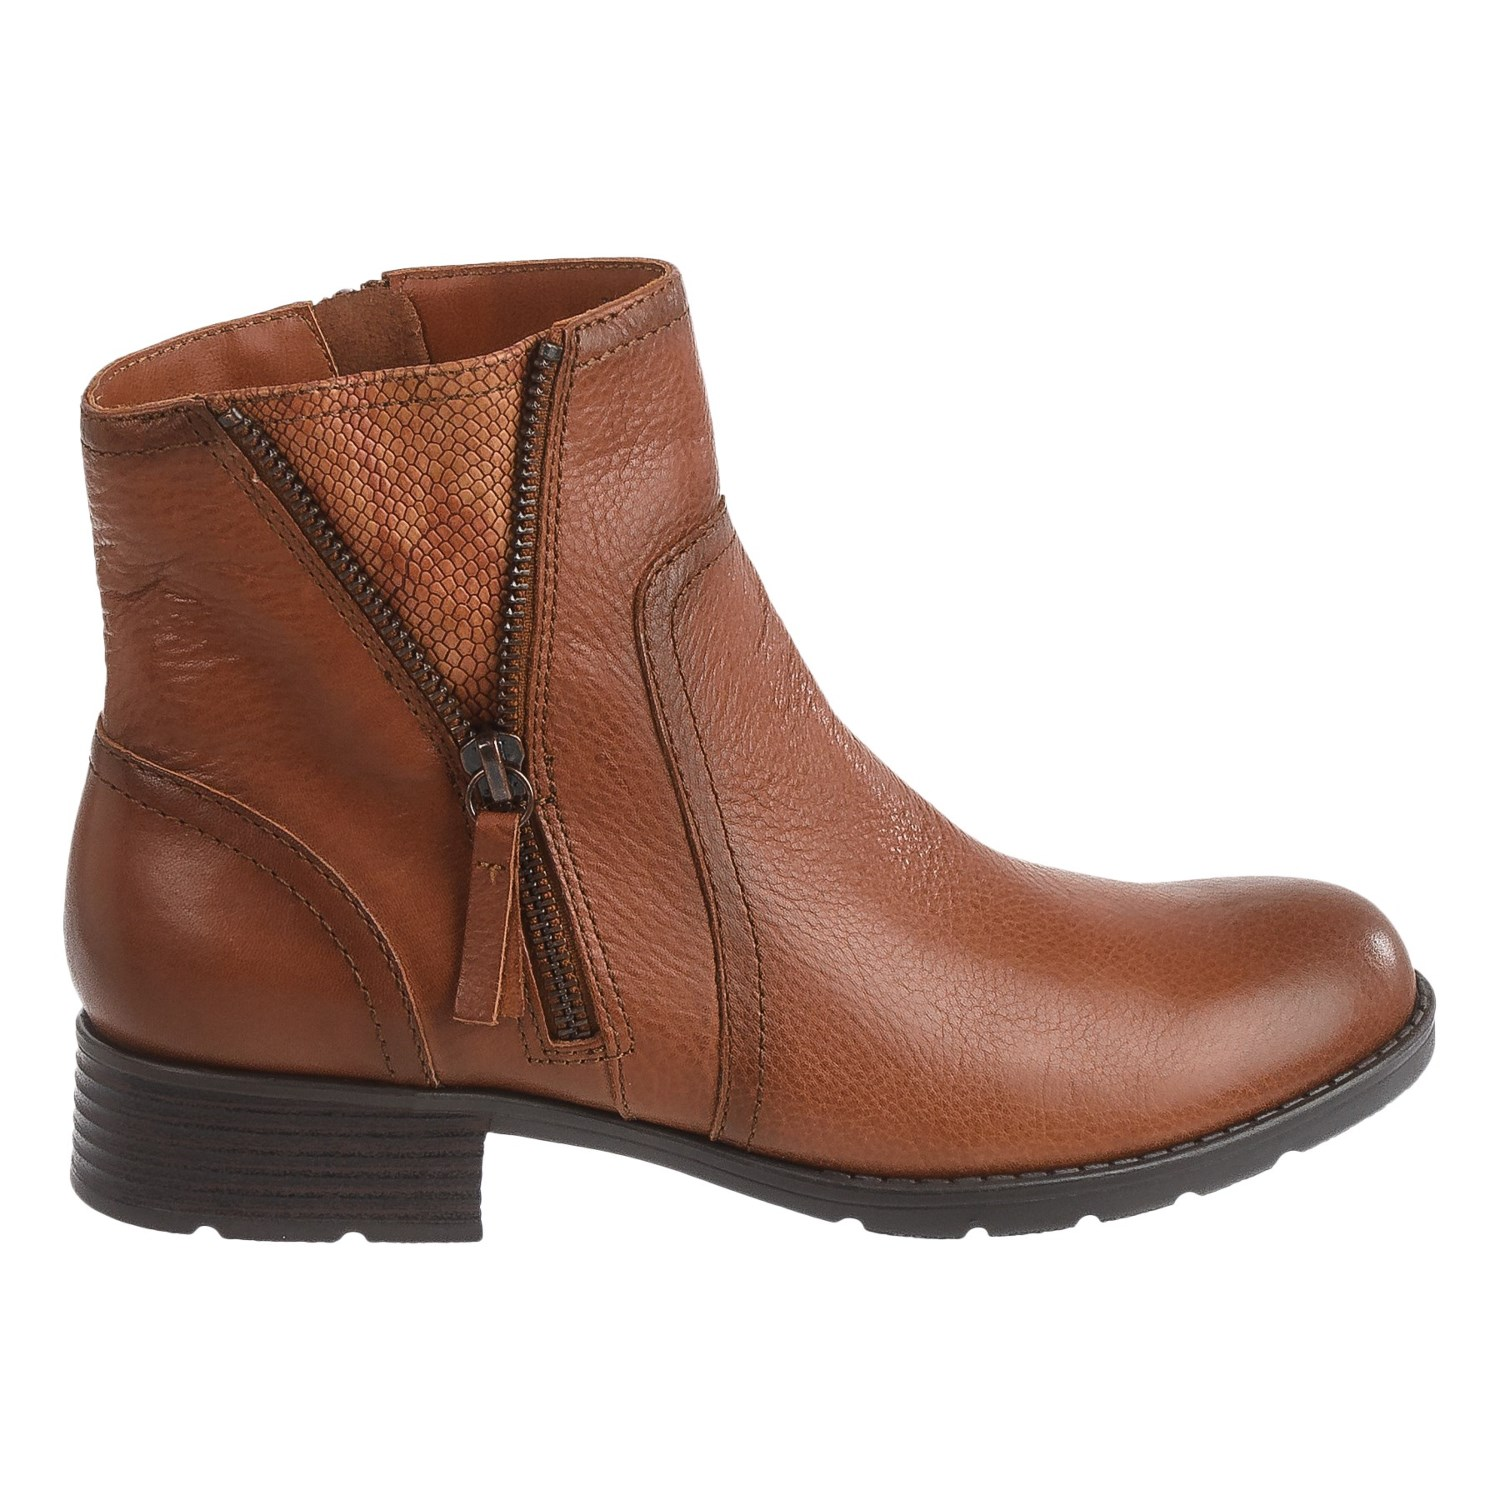 Comfortiva Val Ankle Boots (For Women) - Save 67%